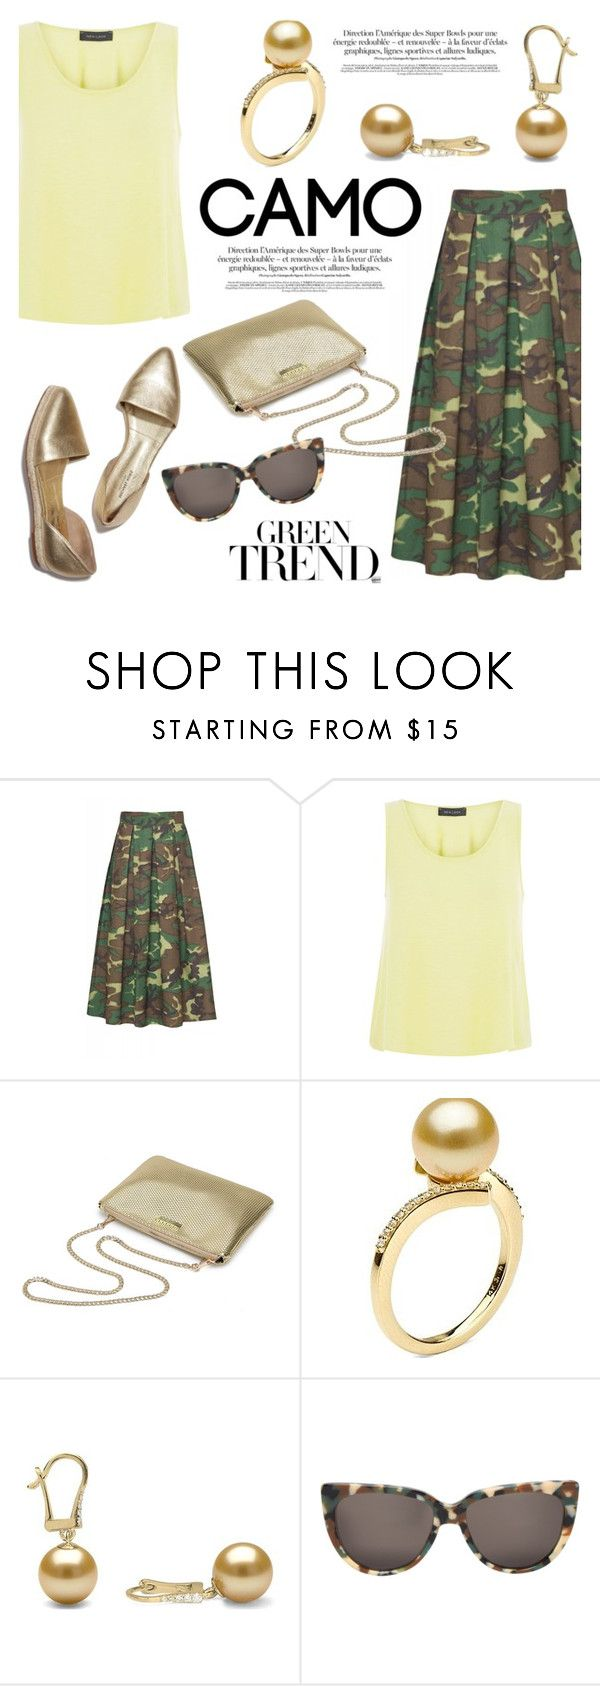 """""""Go camo!"""" by pearlparadise ❤ liked on Polyvore featuring Department 5, New Look, Prism, contestentry, camostyle, pearljewelry and pearlparadise"""